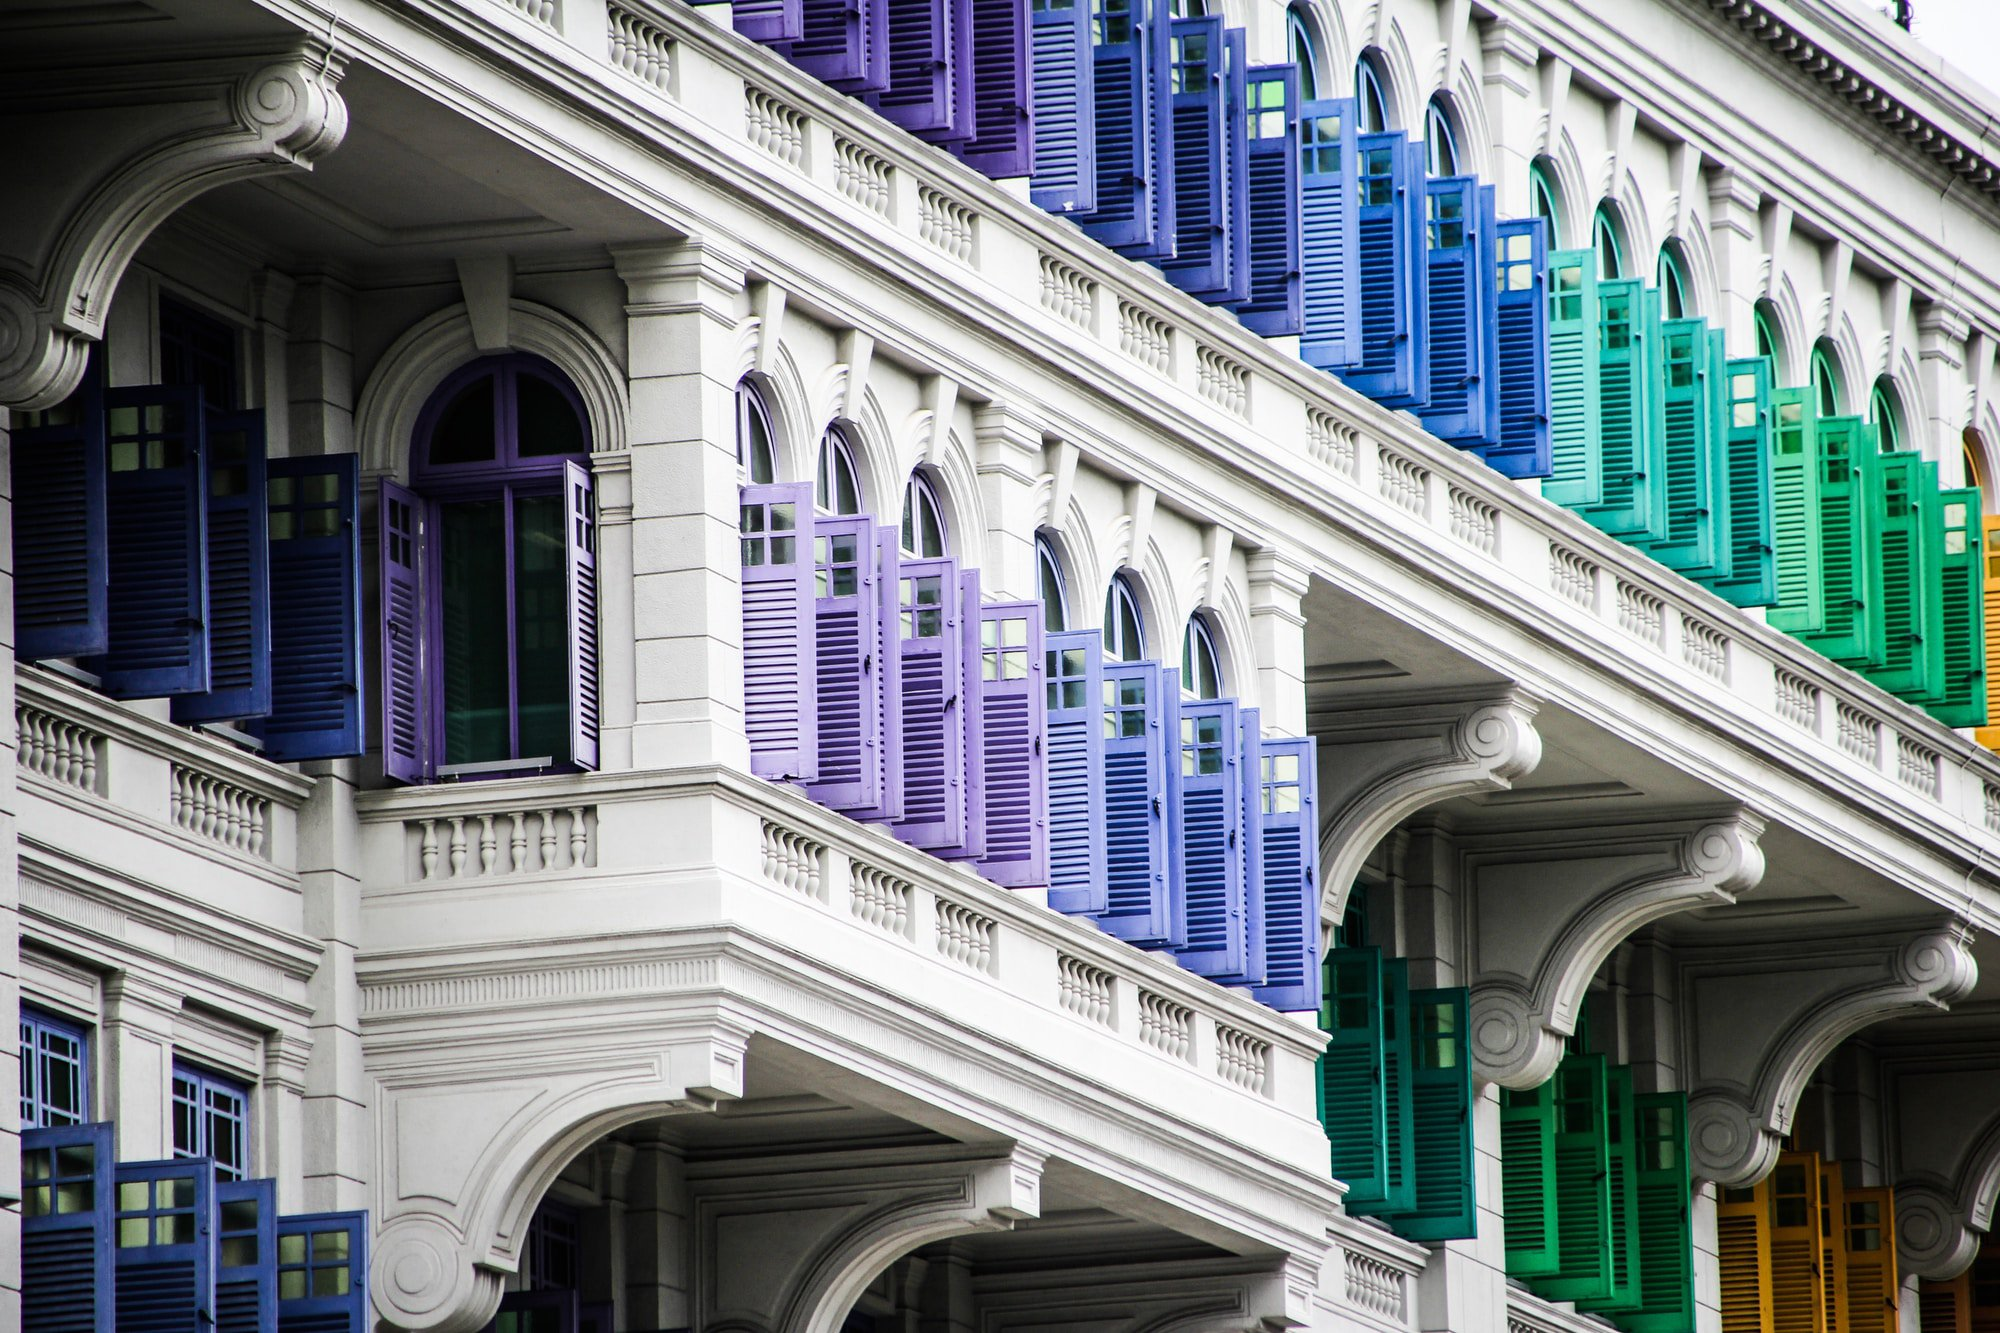 Can you get different colors of plantation shutters?